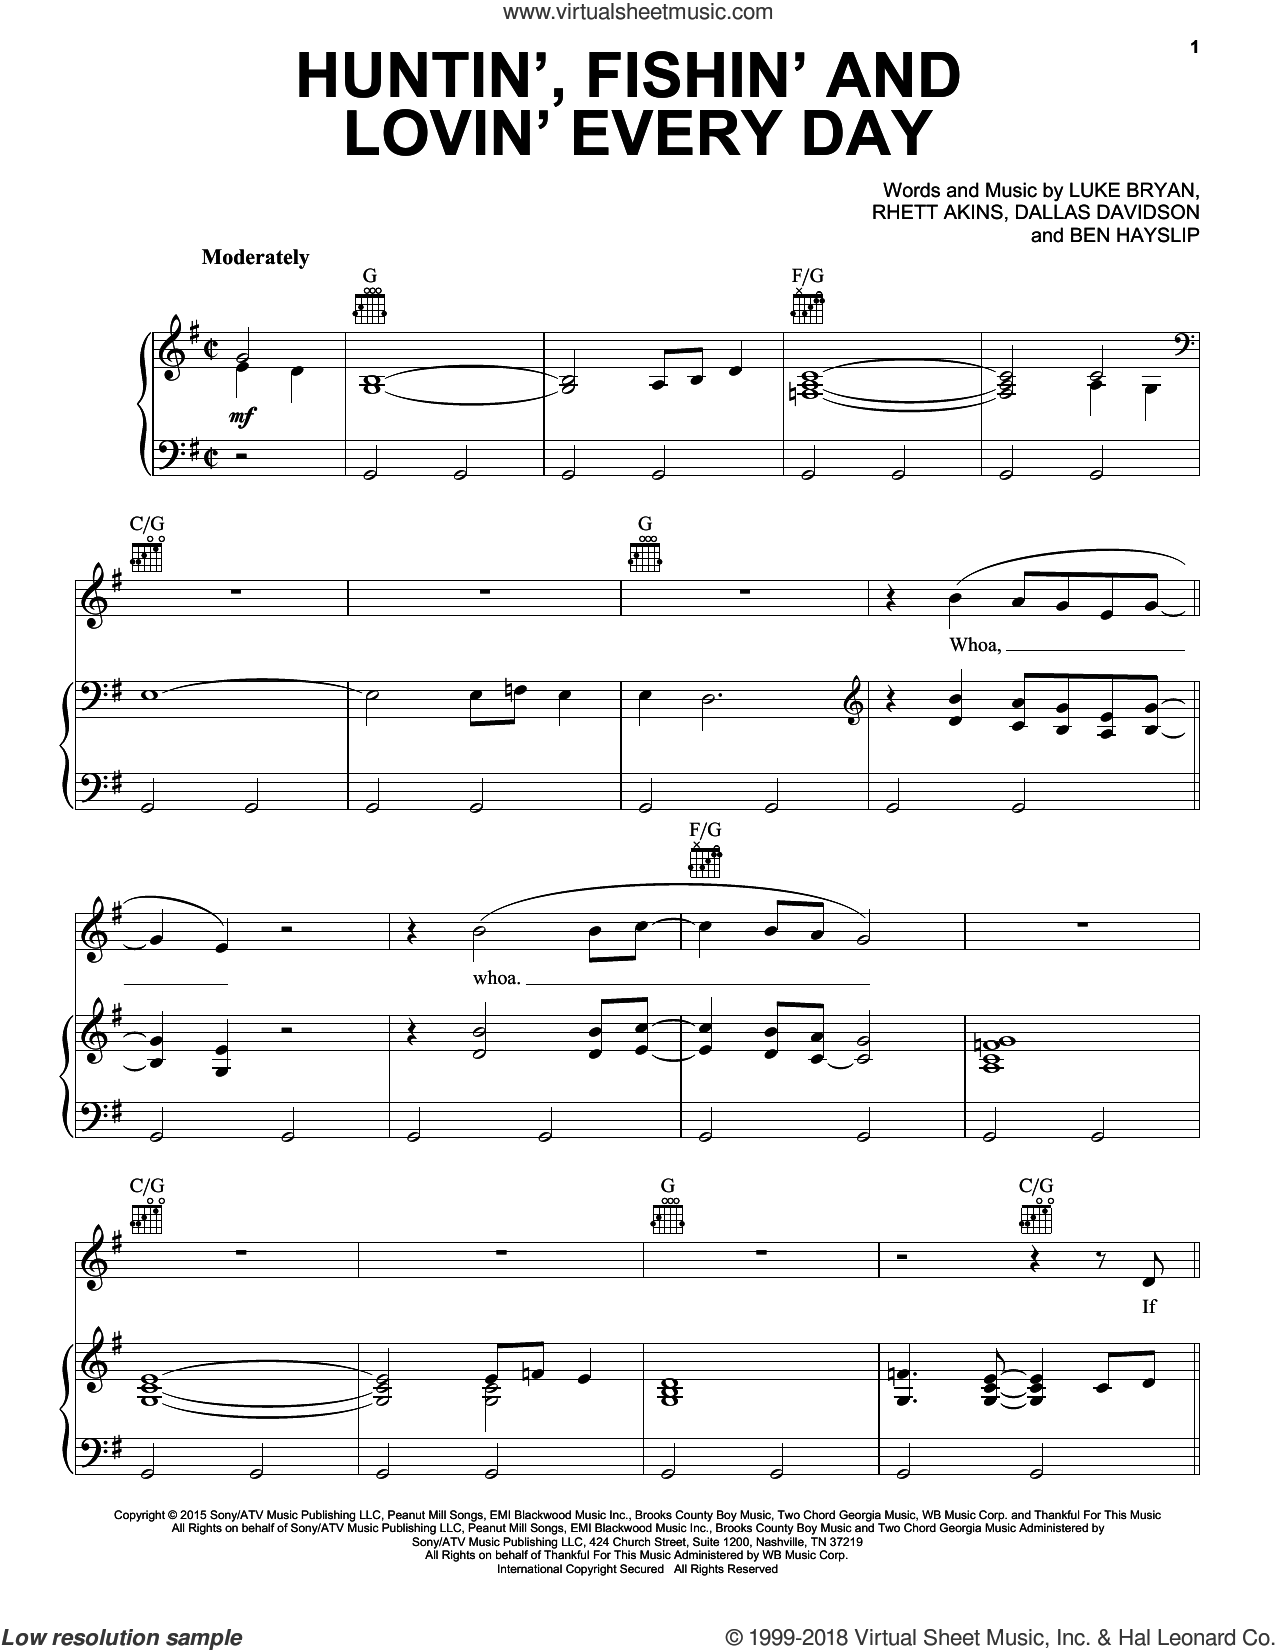 Huntin', Fishin' And Lovin' Every Day sheet music for voice, piano or guitar by Luke Bryan, Ben Hayslip, Dallas Davidson and Rhett Akins, intermediate skill level